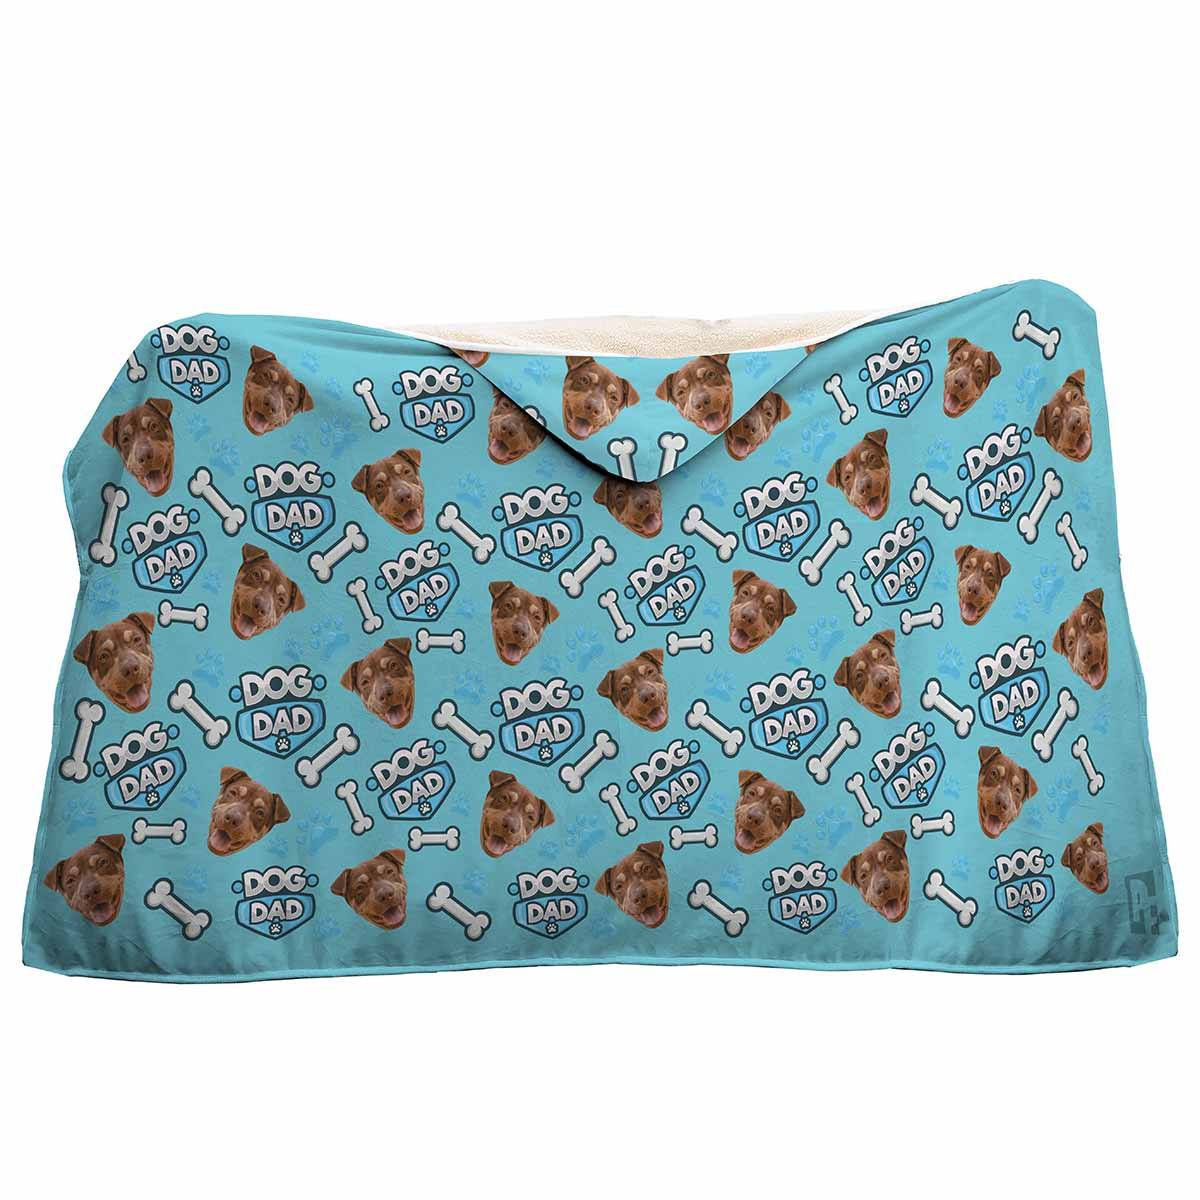 blue Dog Dad hooded blanket personalized with photo of face printed on it